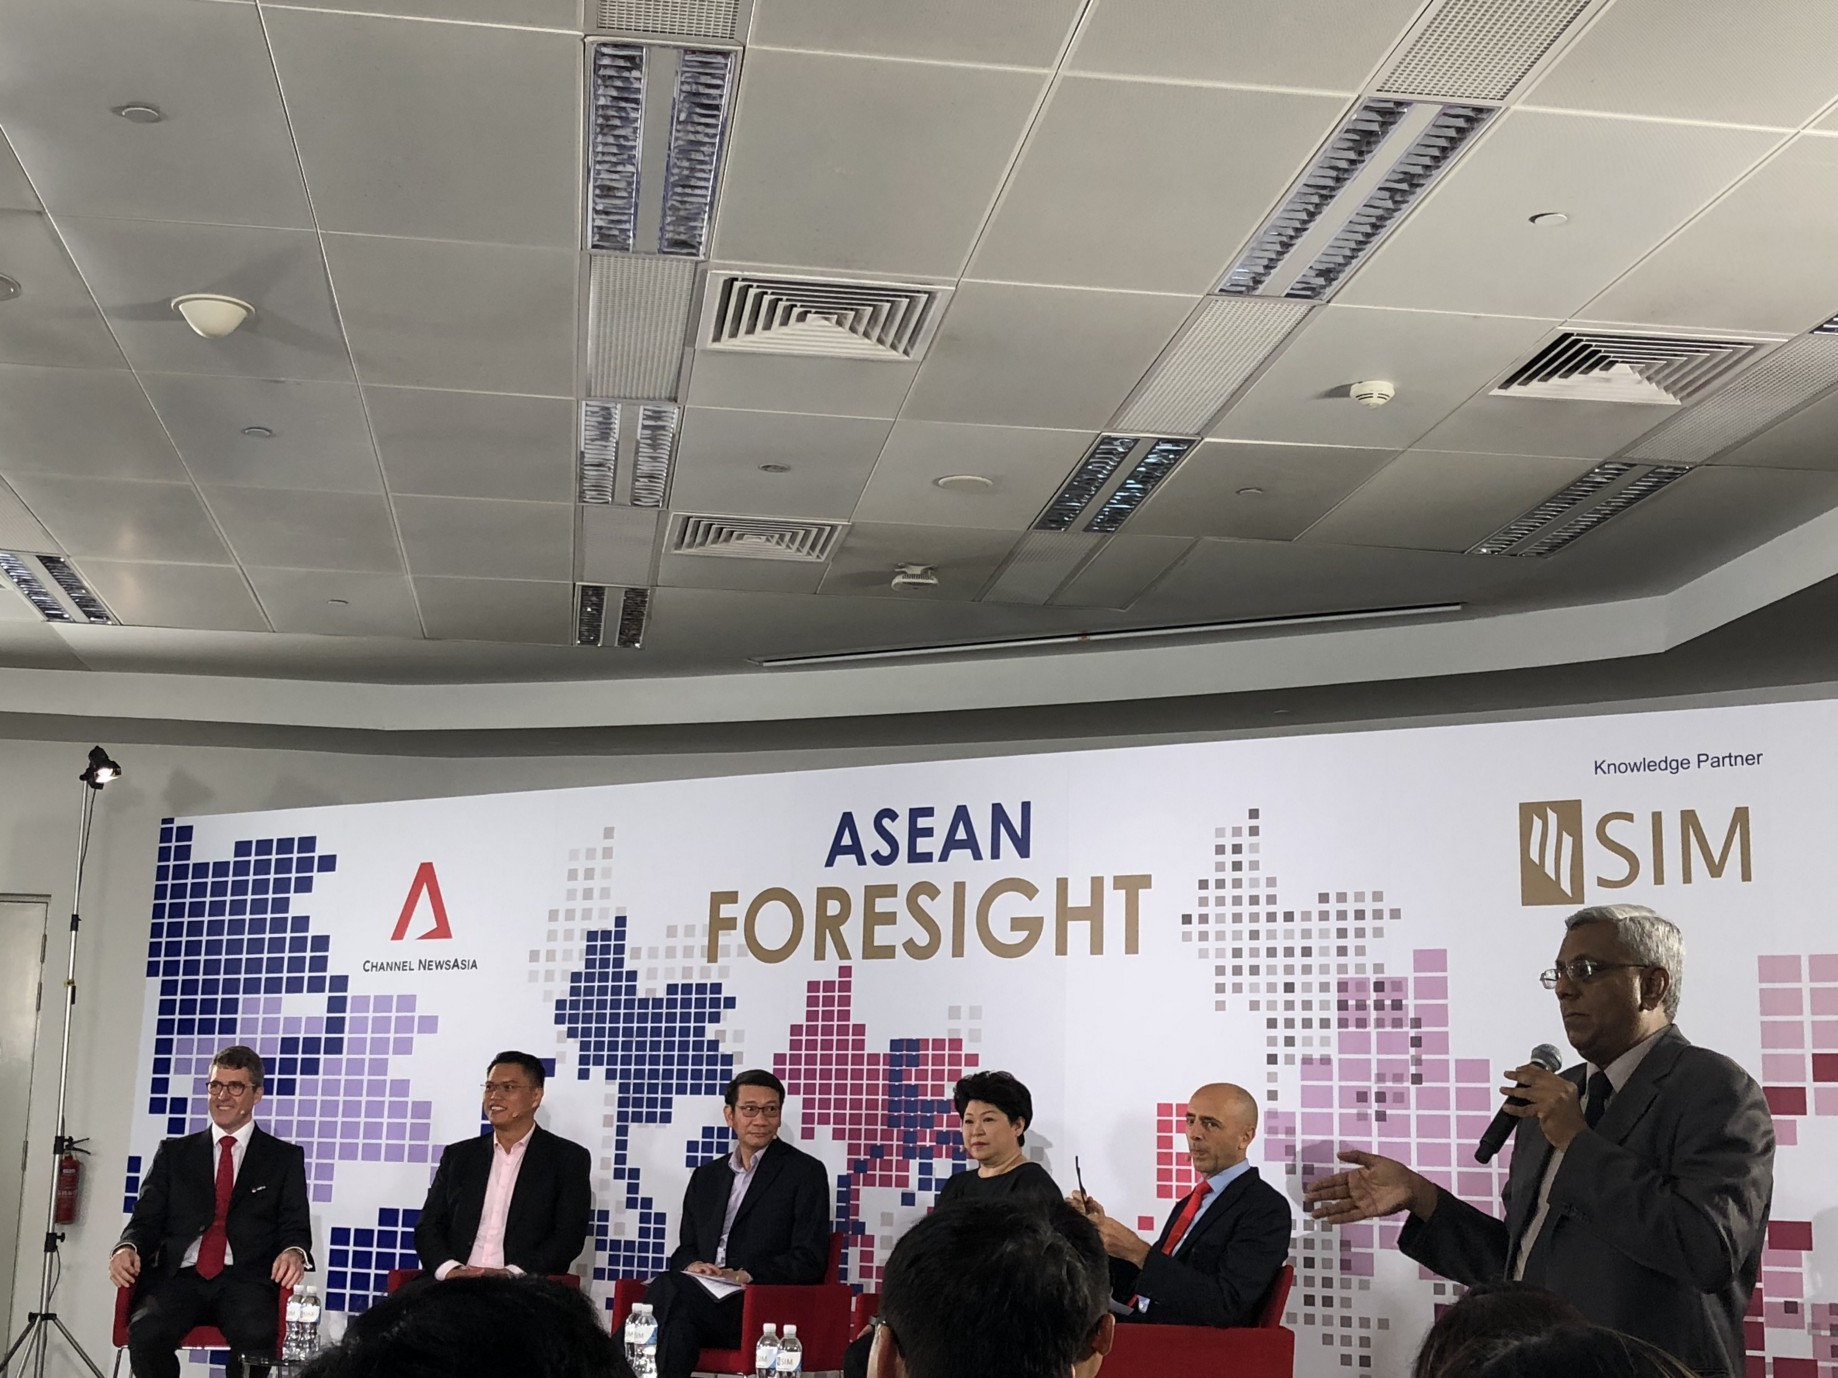 EkkBaz in Channel NewsAsia's ASEAN Foresight - EkkBaz - Medium